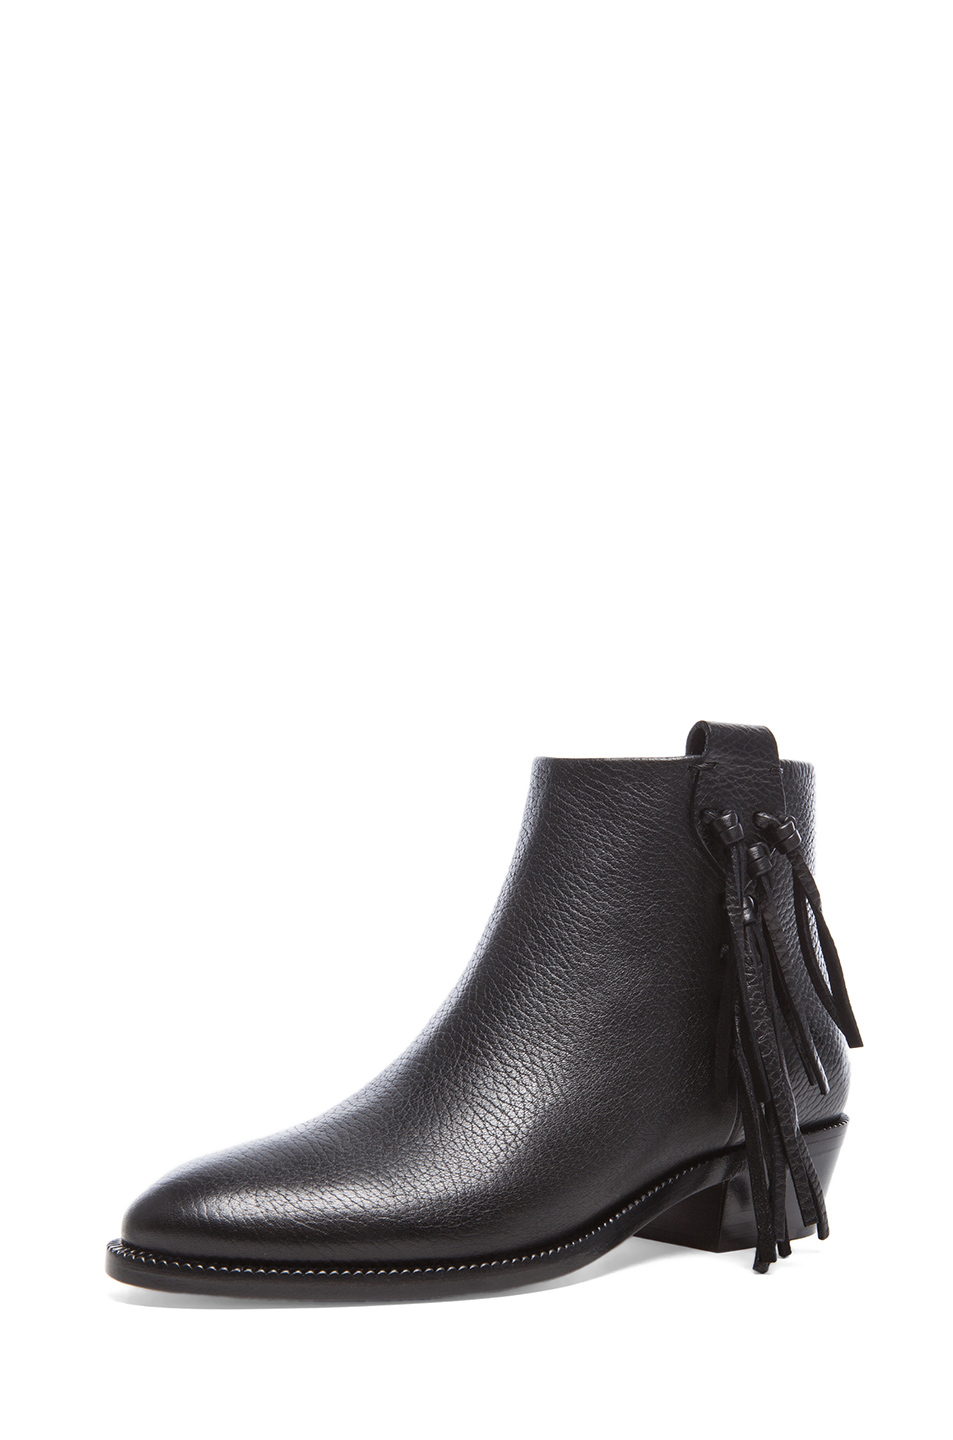 valentino fringe grained leather ankle boots in black lyst